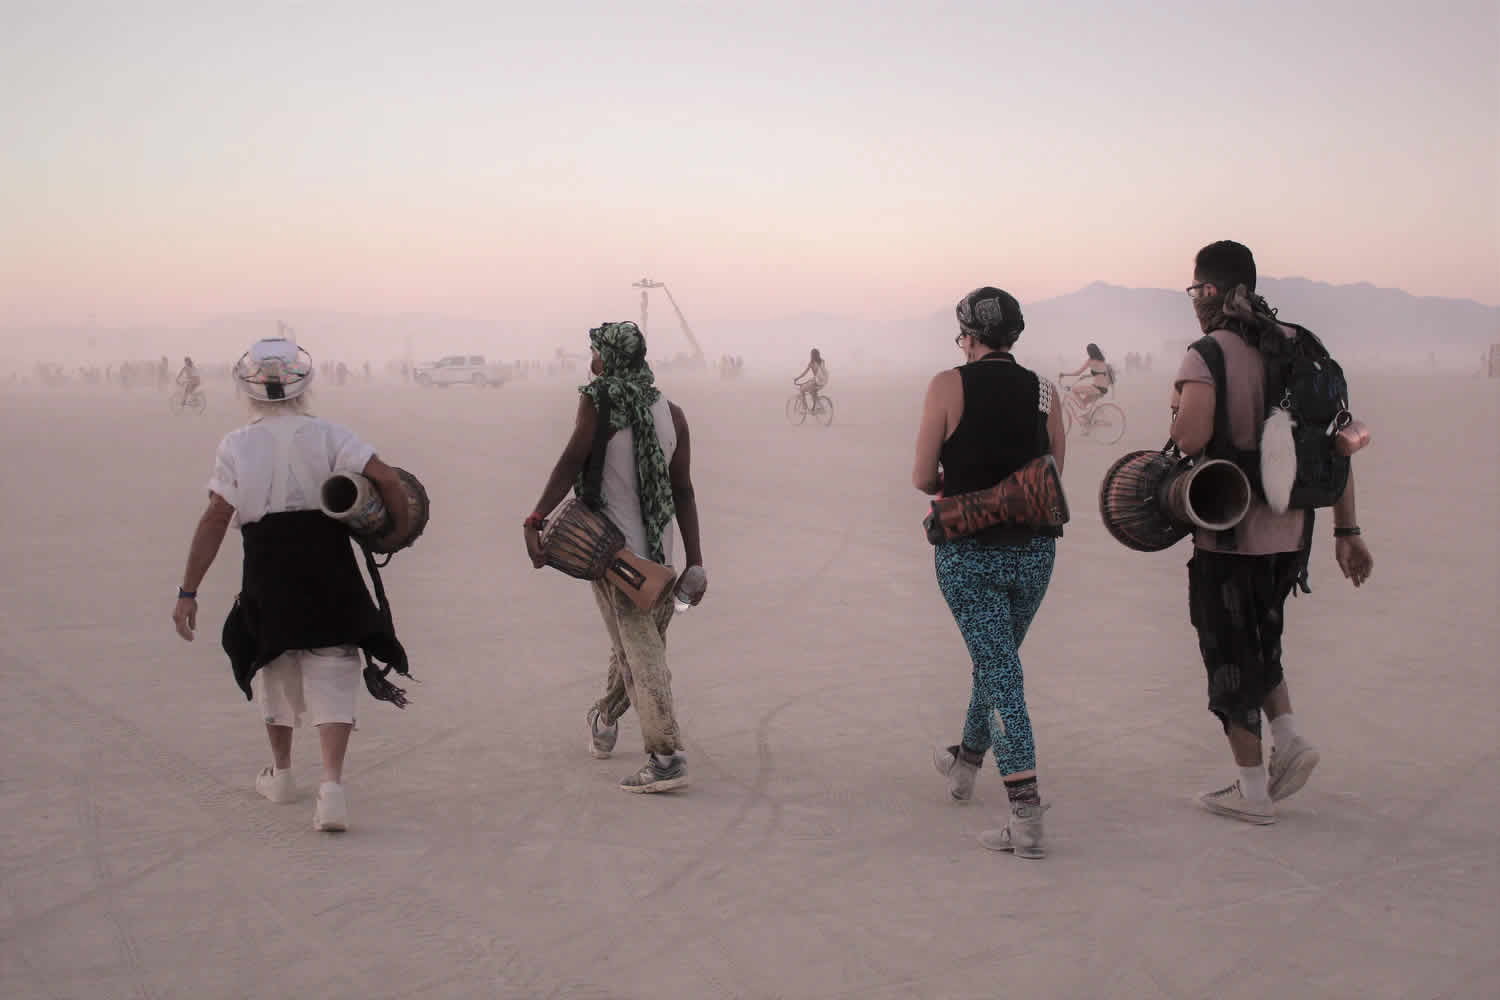 Burning Man Festival Is Canceled for the 2nd Year in a Row